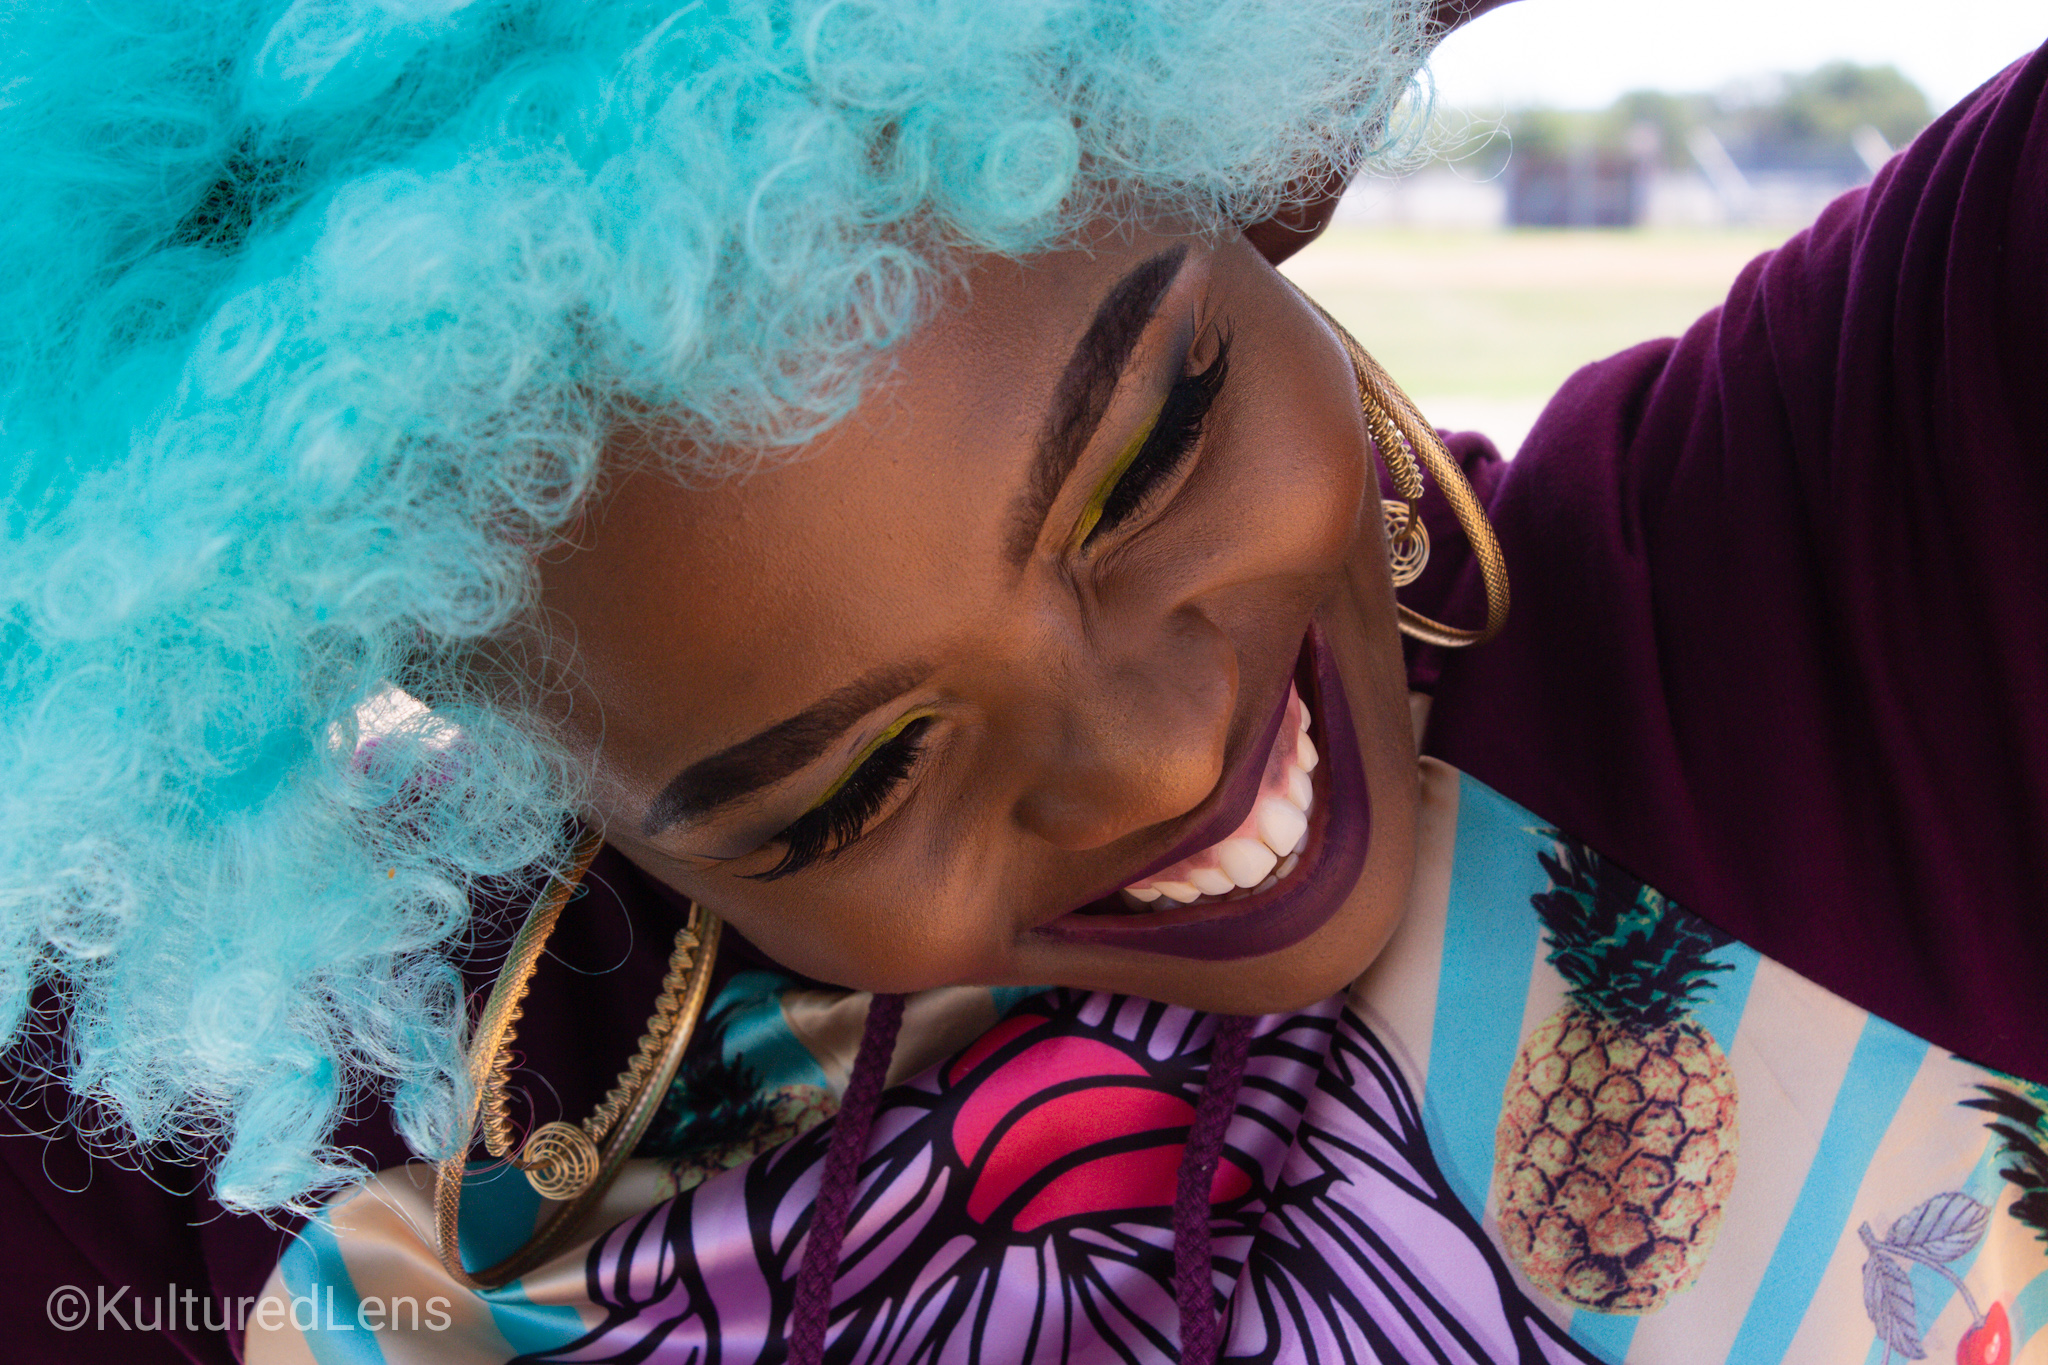 Portrait of a woman with blue hair smiling by Kultured Lens